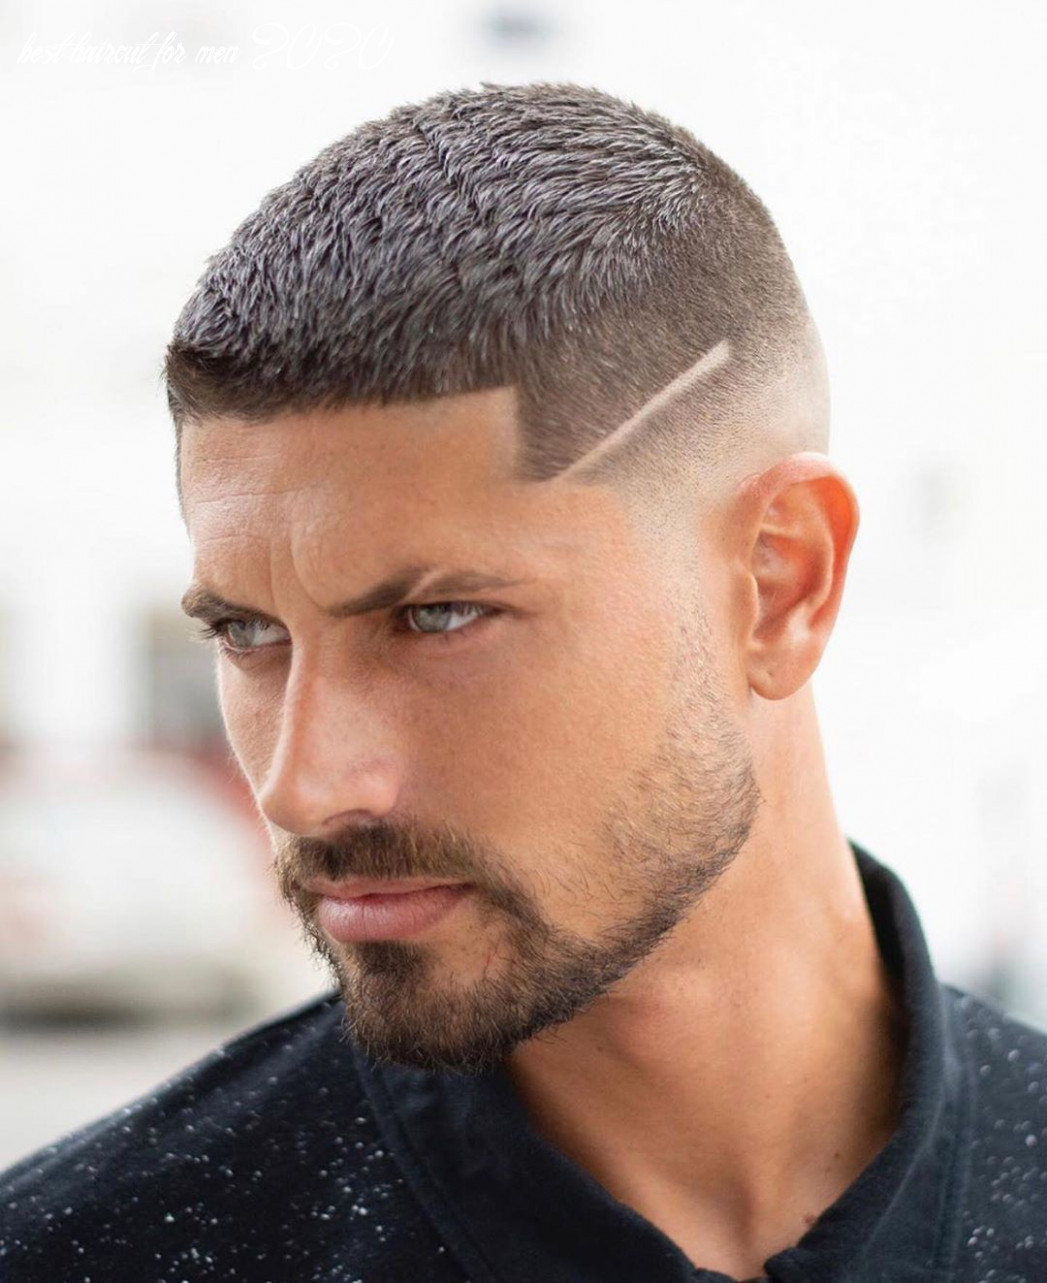 Pin on cortes de pelo para hombre corto best haircut for men 2020